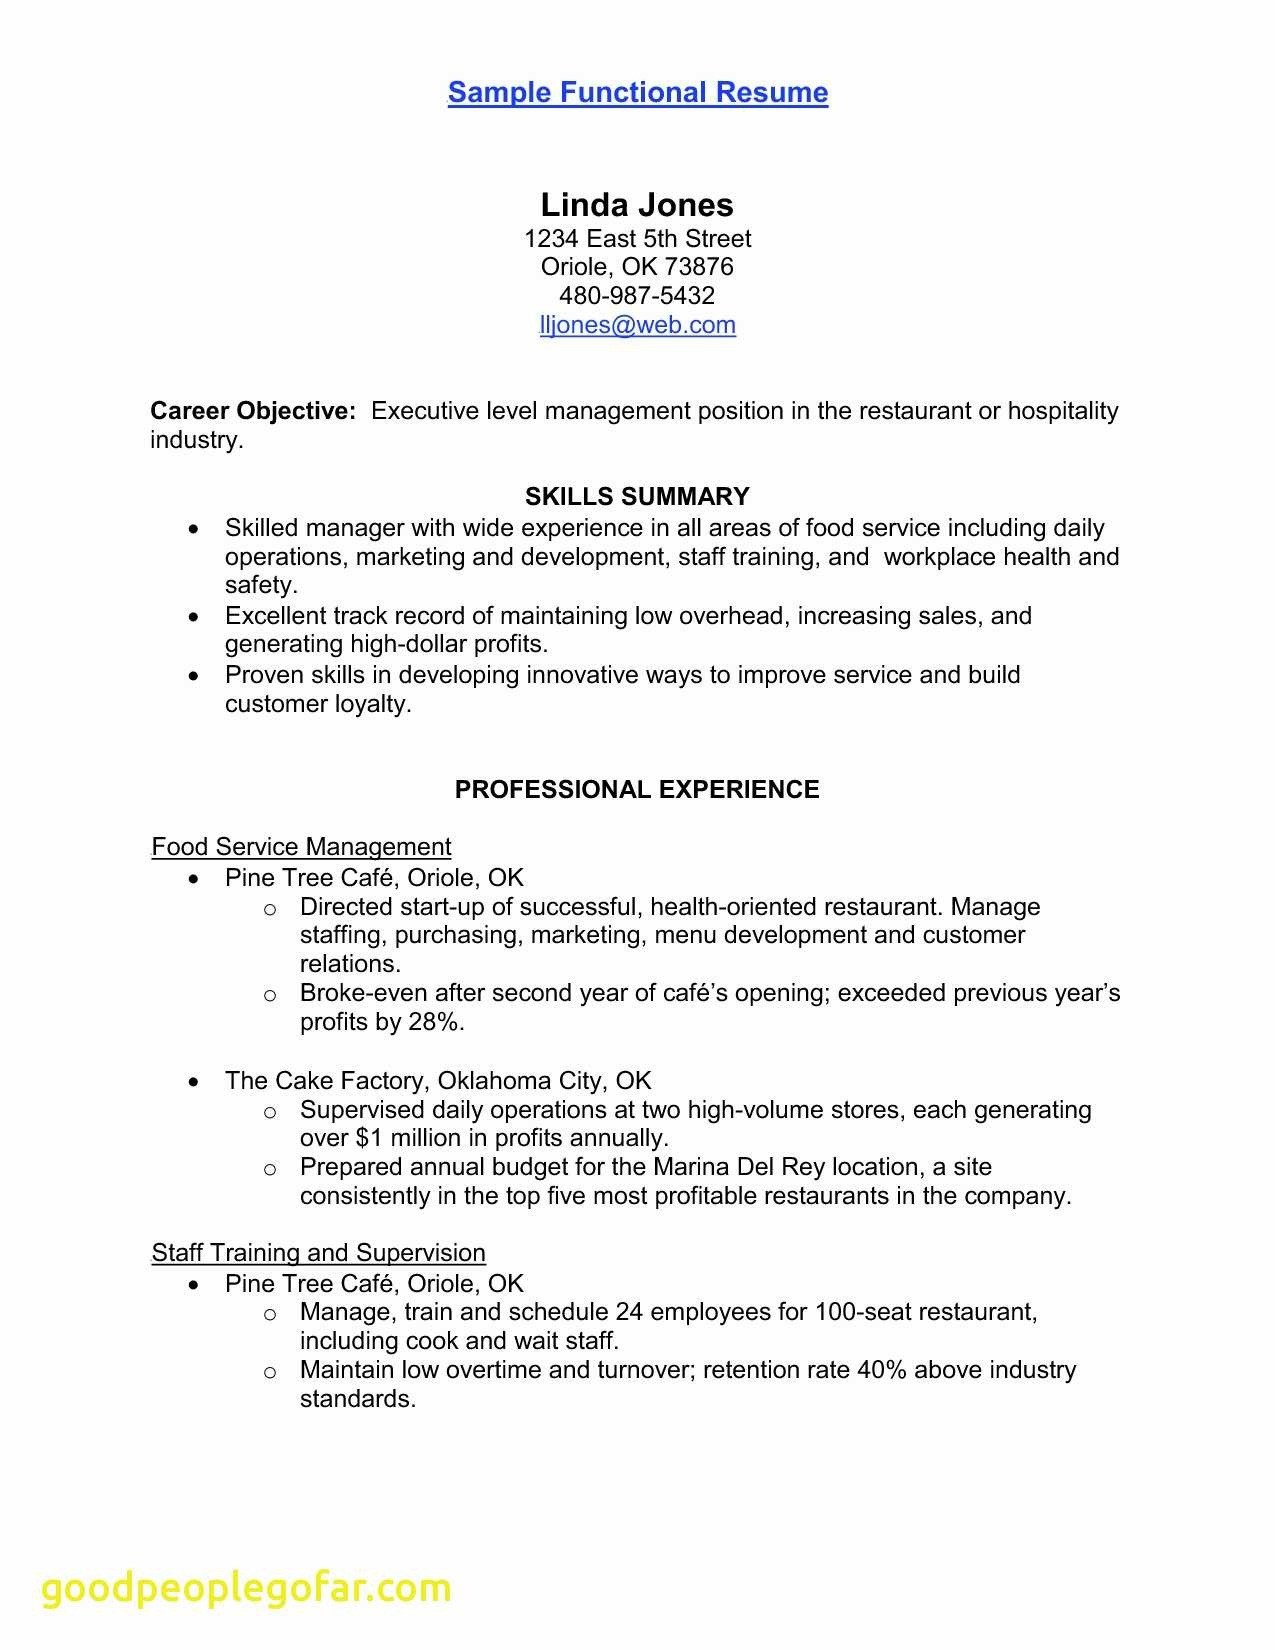 Service Industry Resume Sample - Apprentice Electrician Resume Fresh Electrical Resume Elegant